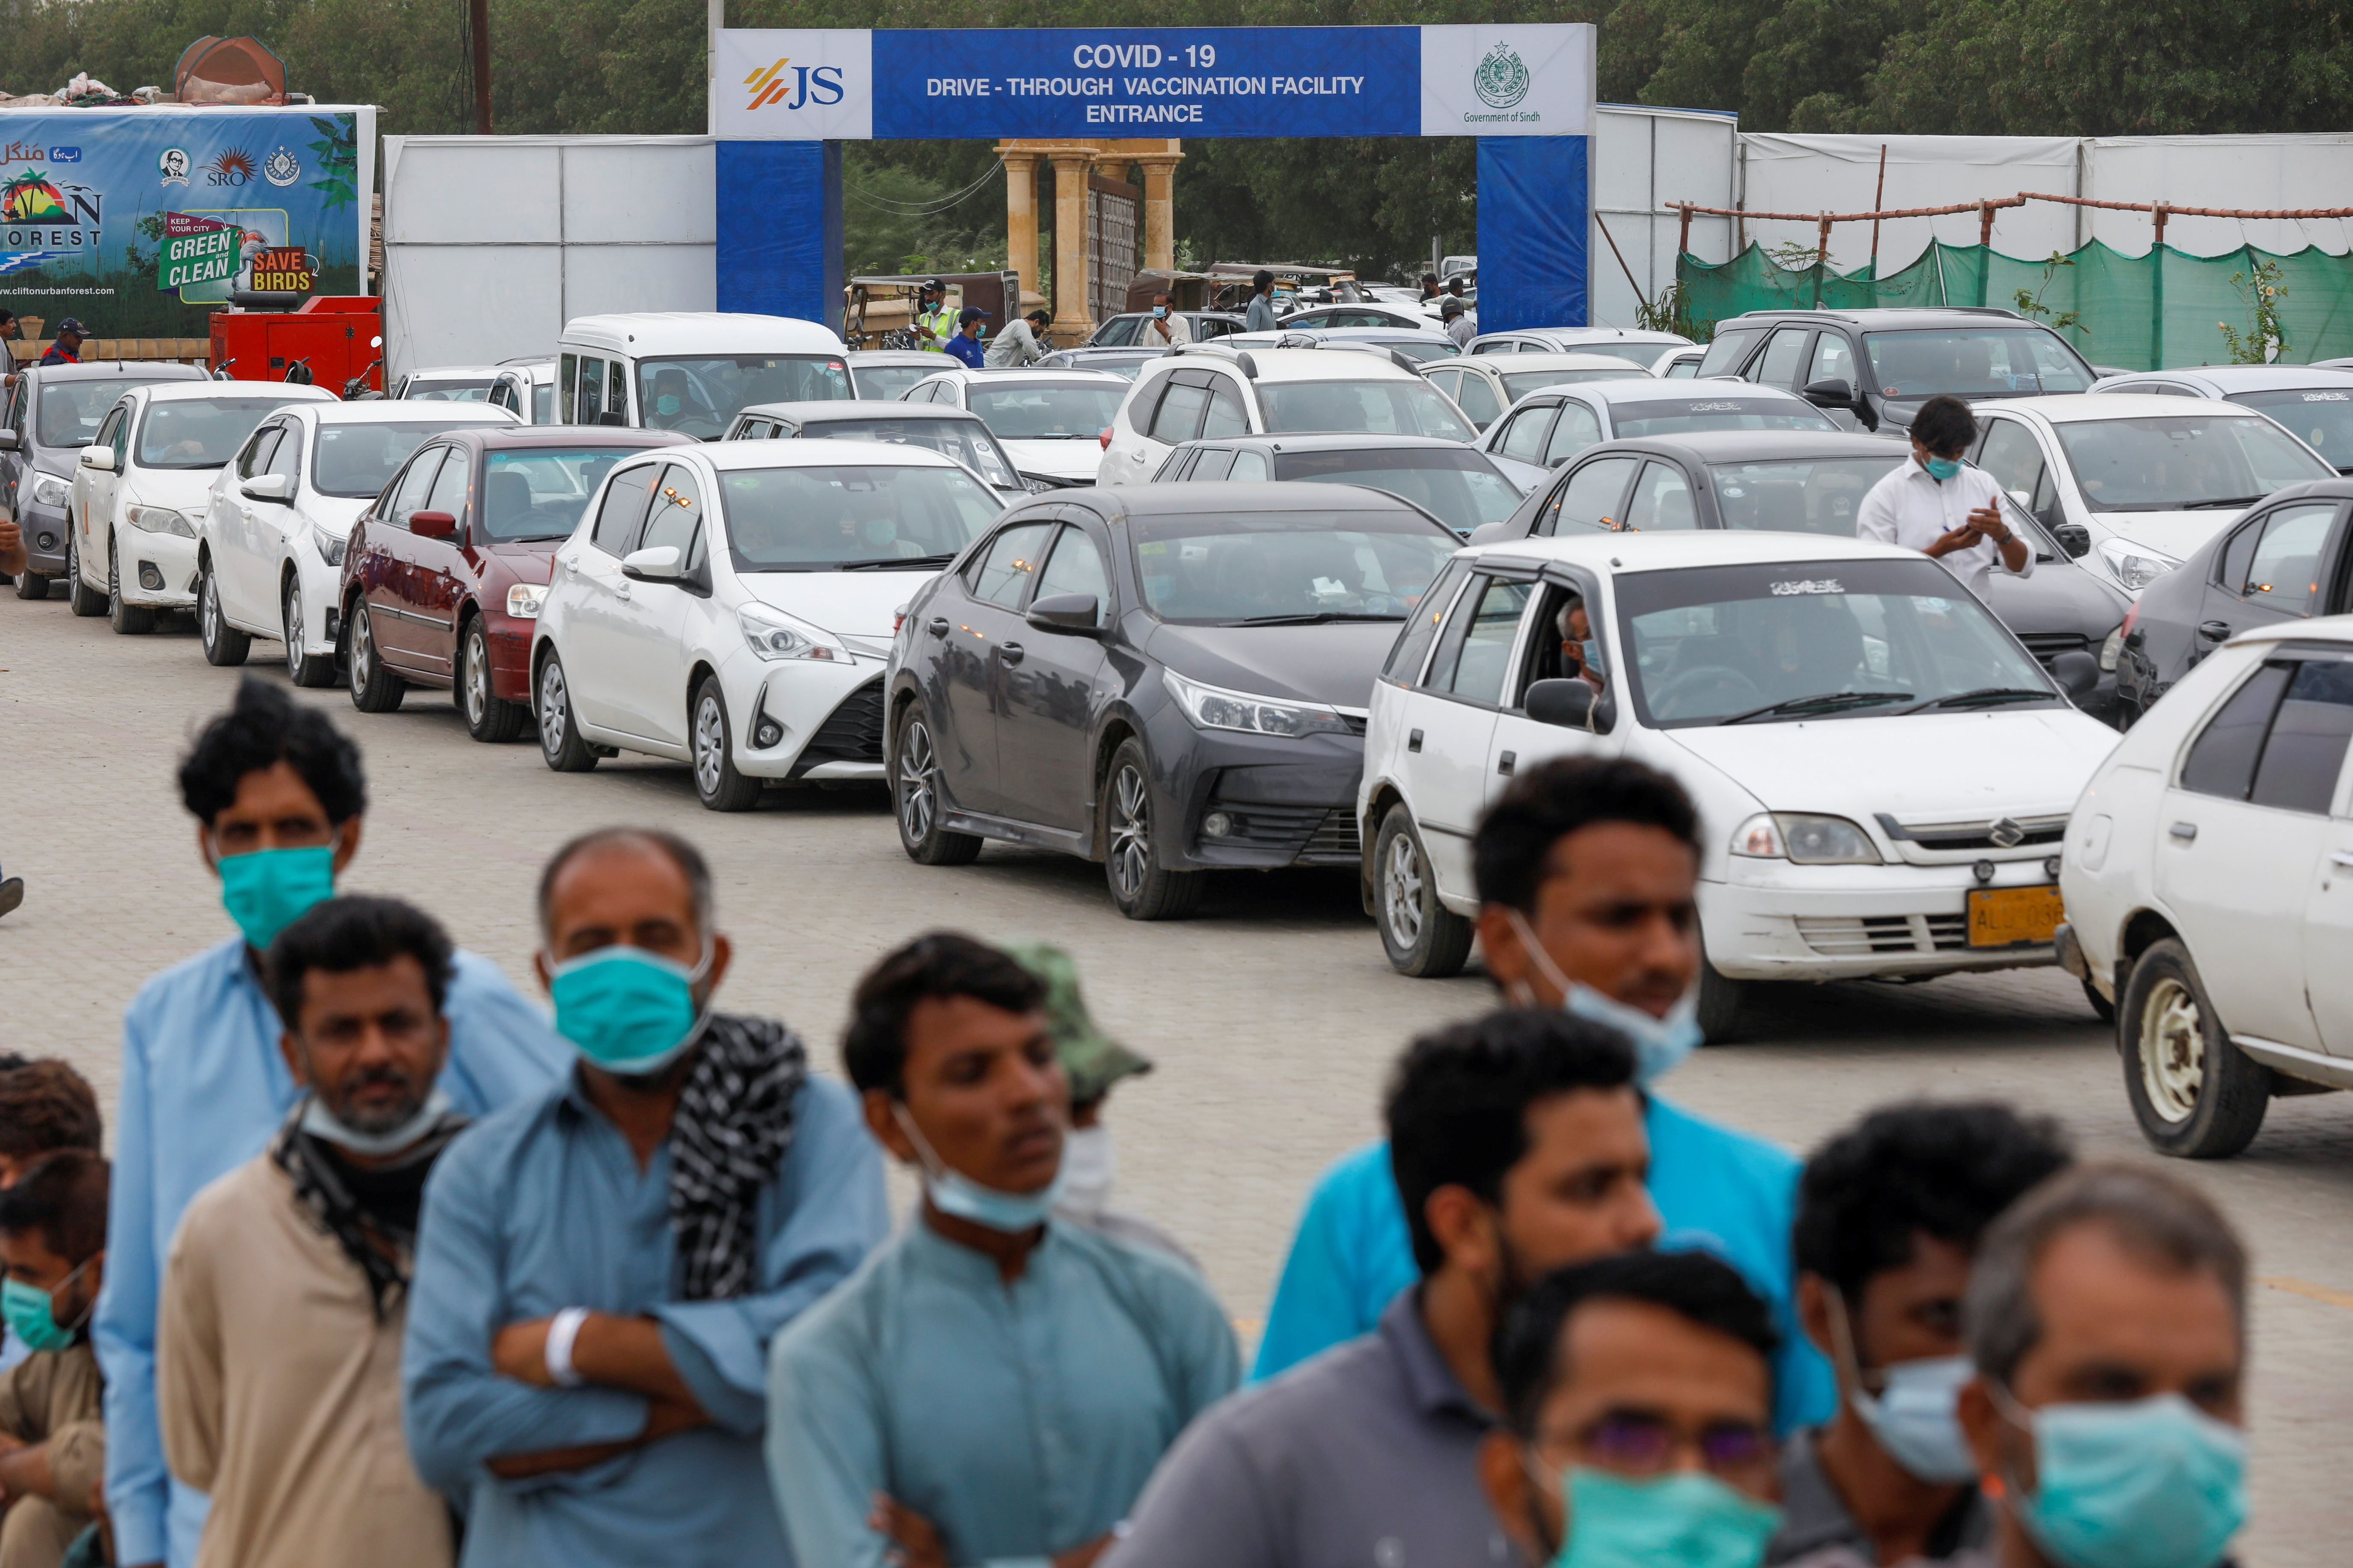 Residents line up to receive  a vaccine against coronavirus disease (COVID-19) at a drive-through vaccination facility in Karachi, Pakistan July 29, 2021. REUTERS/Akhtar Soomro